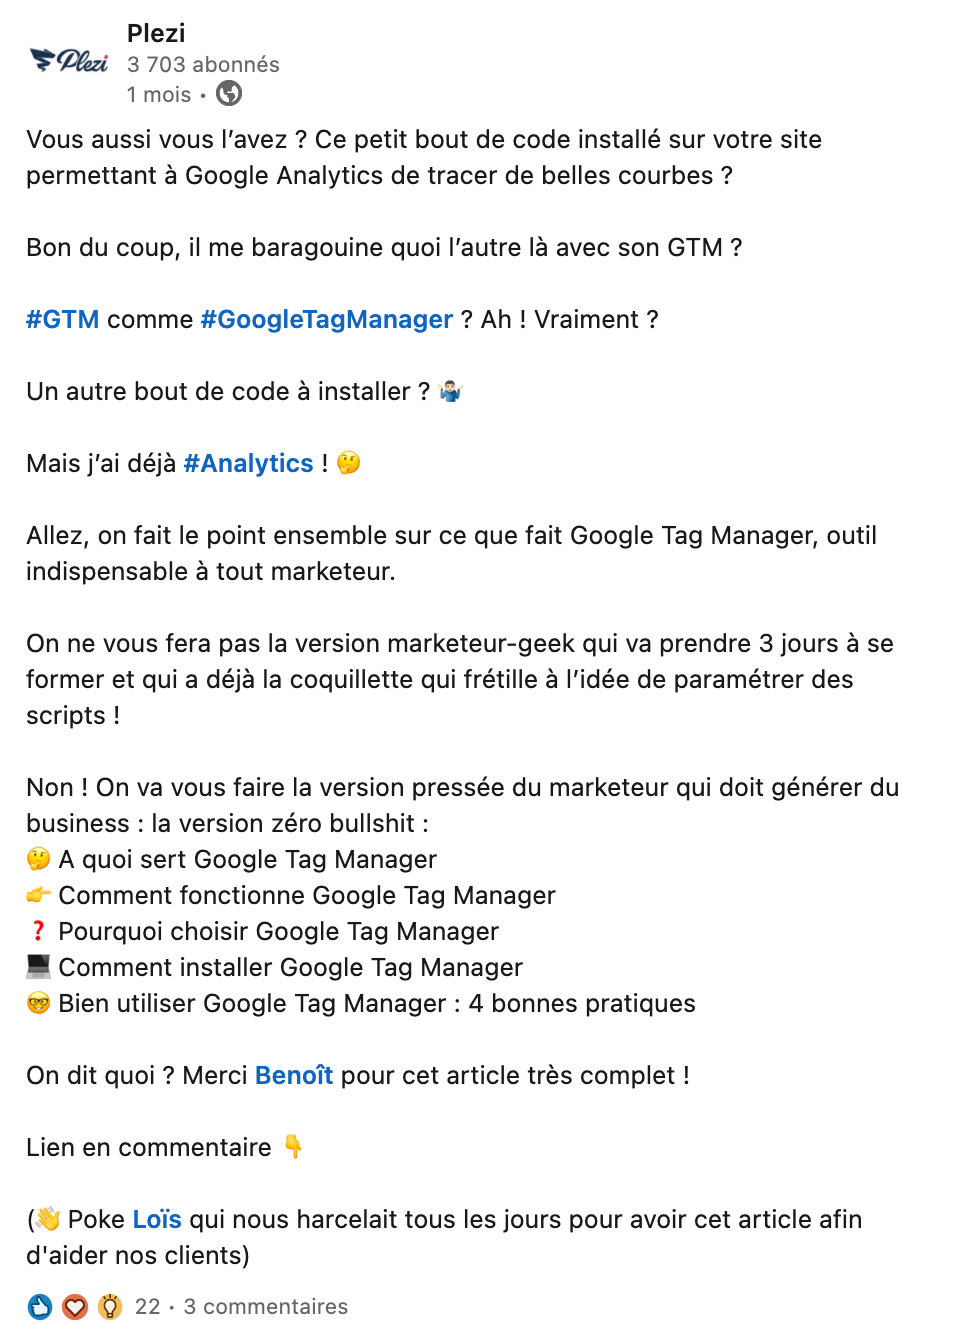 Post LinkedIn faisant la promotion d'un article de blog Plezi